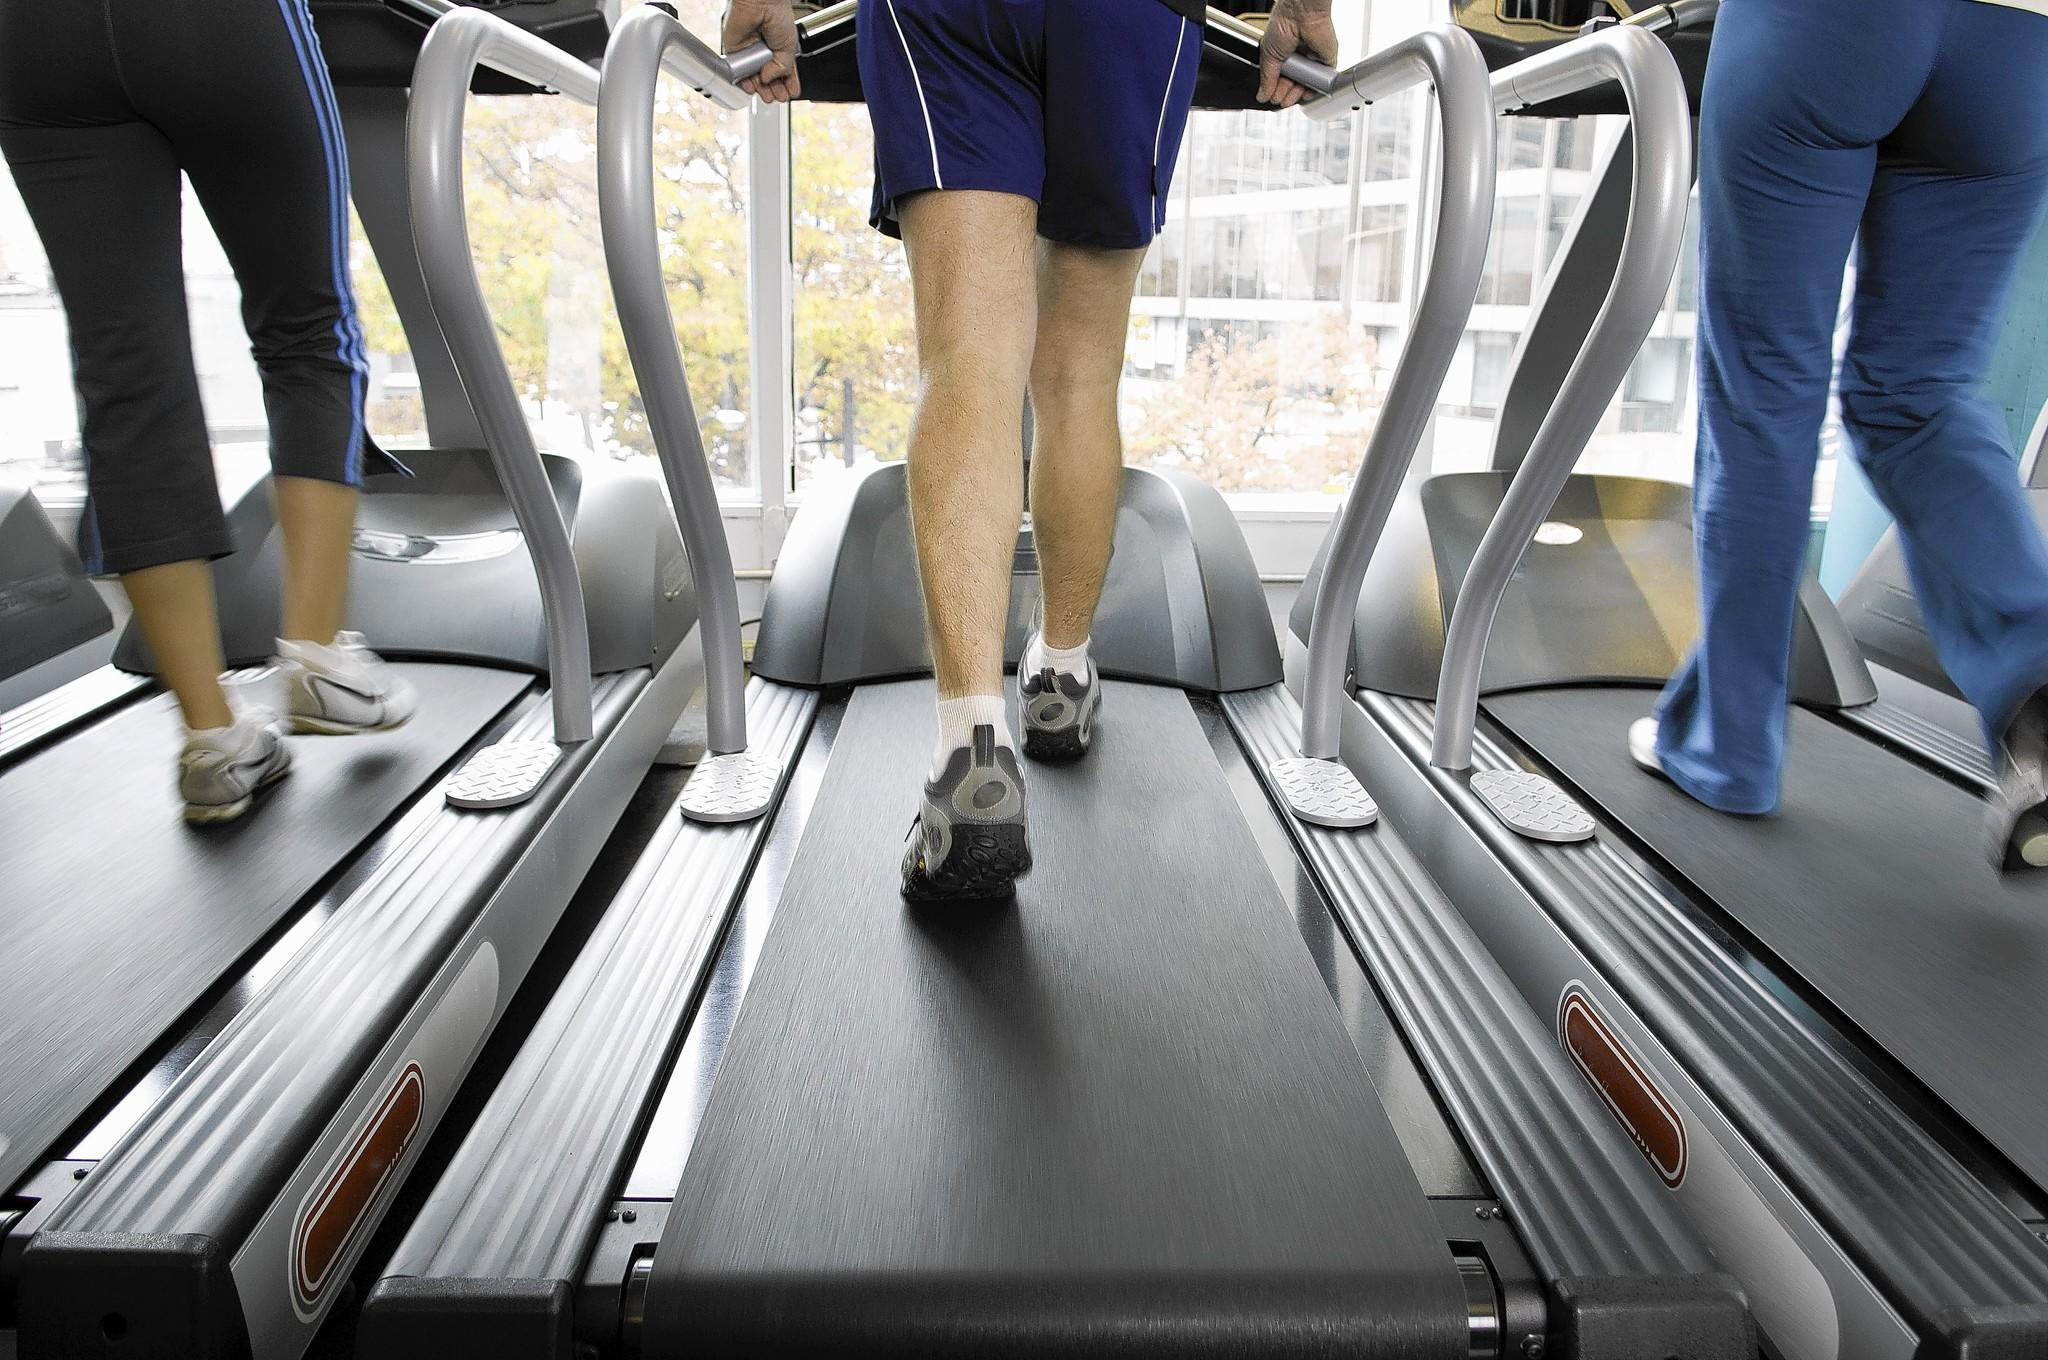 Jogging over solid ground involves pushing away from a stable force, while running on a treadmill does not.